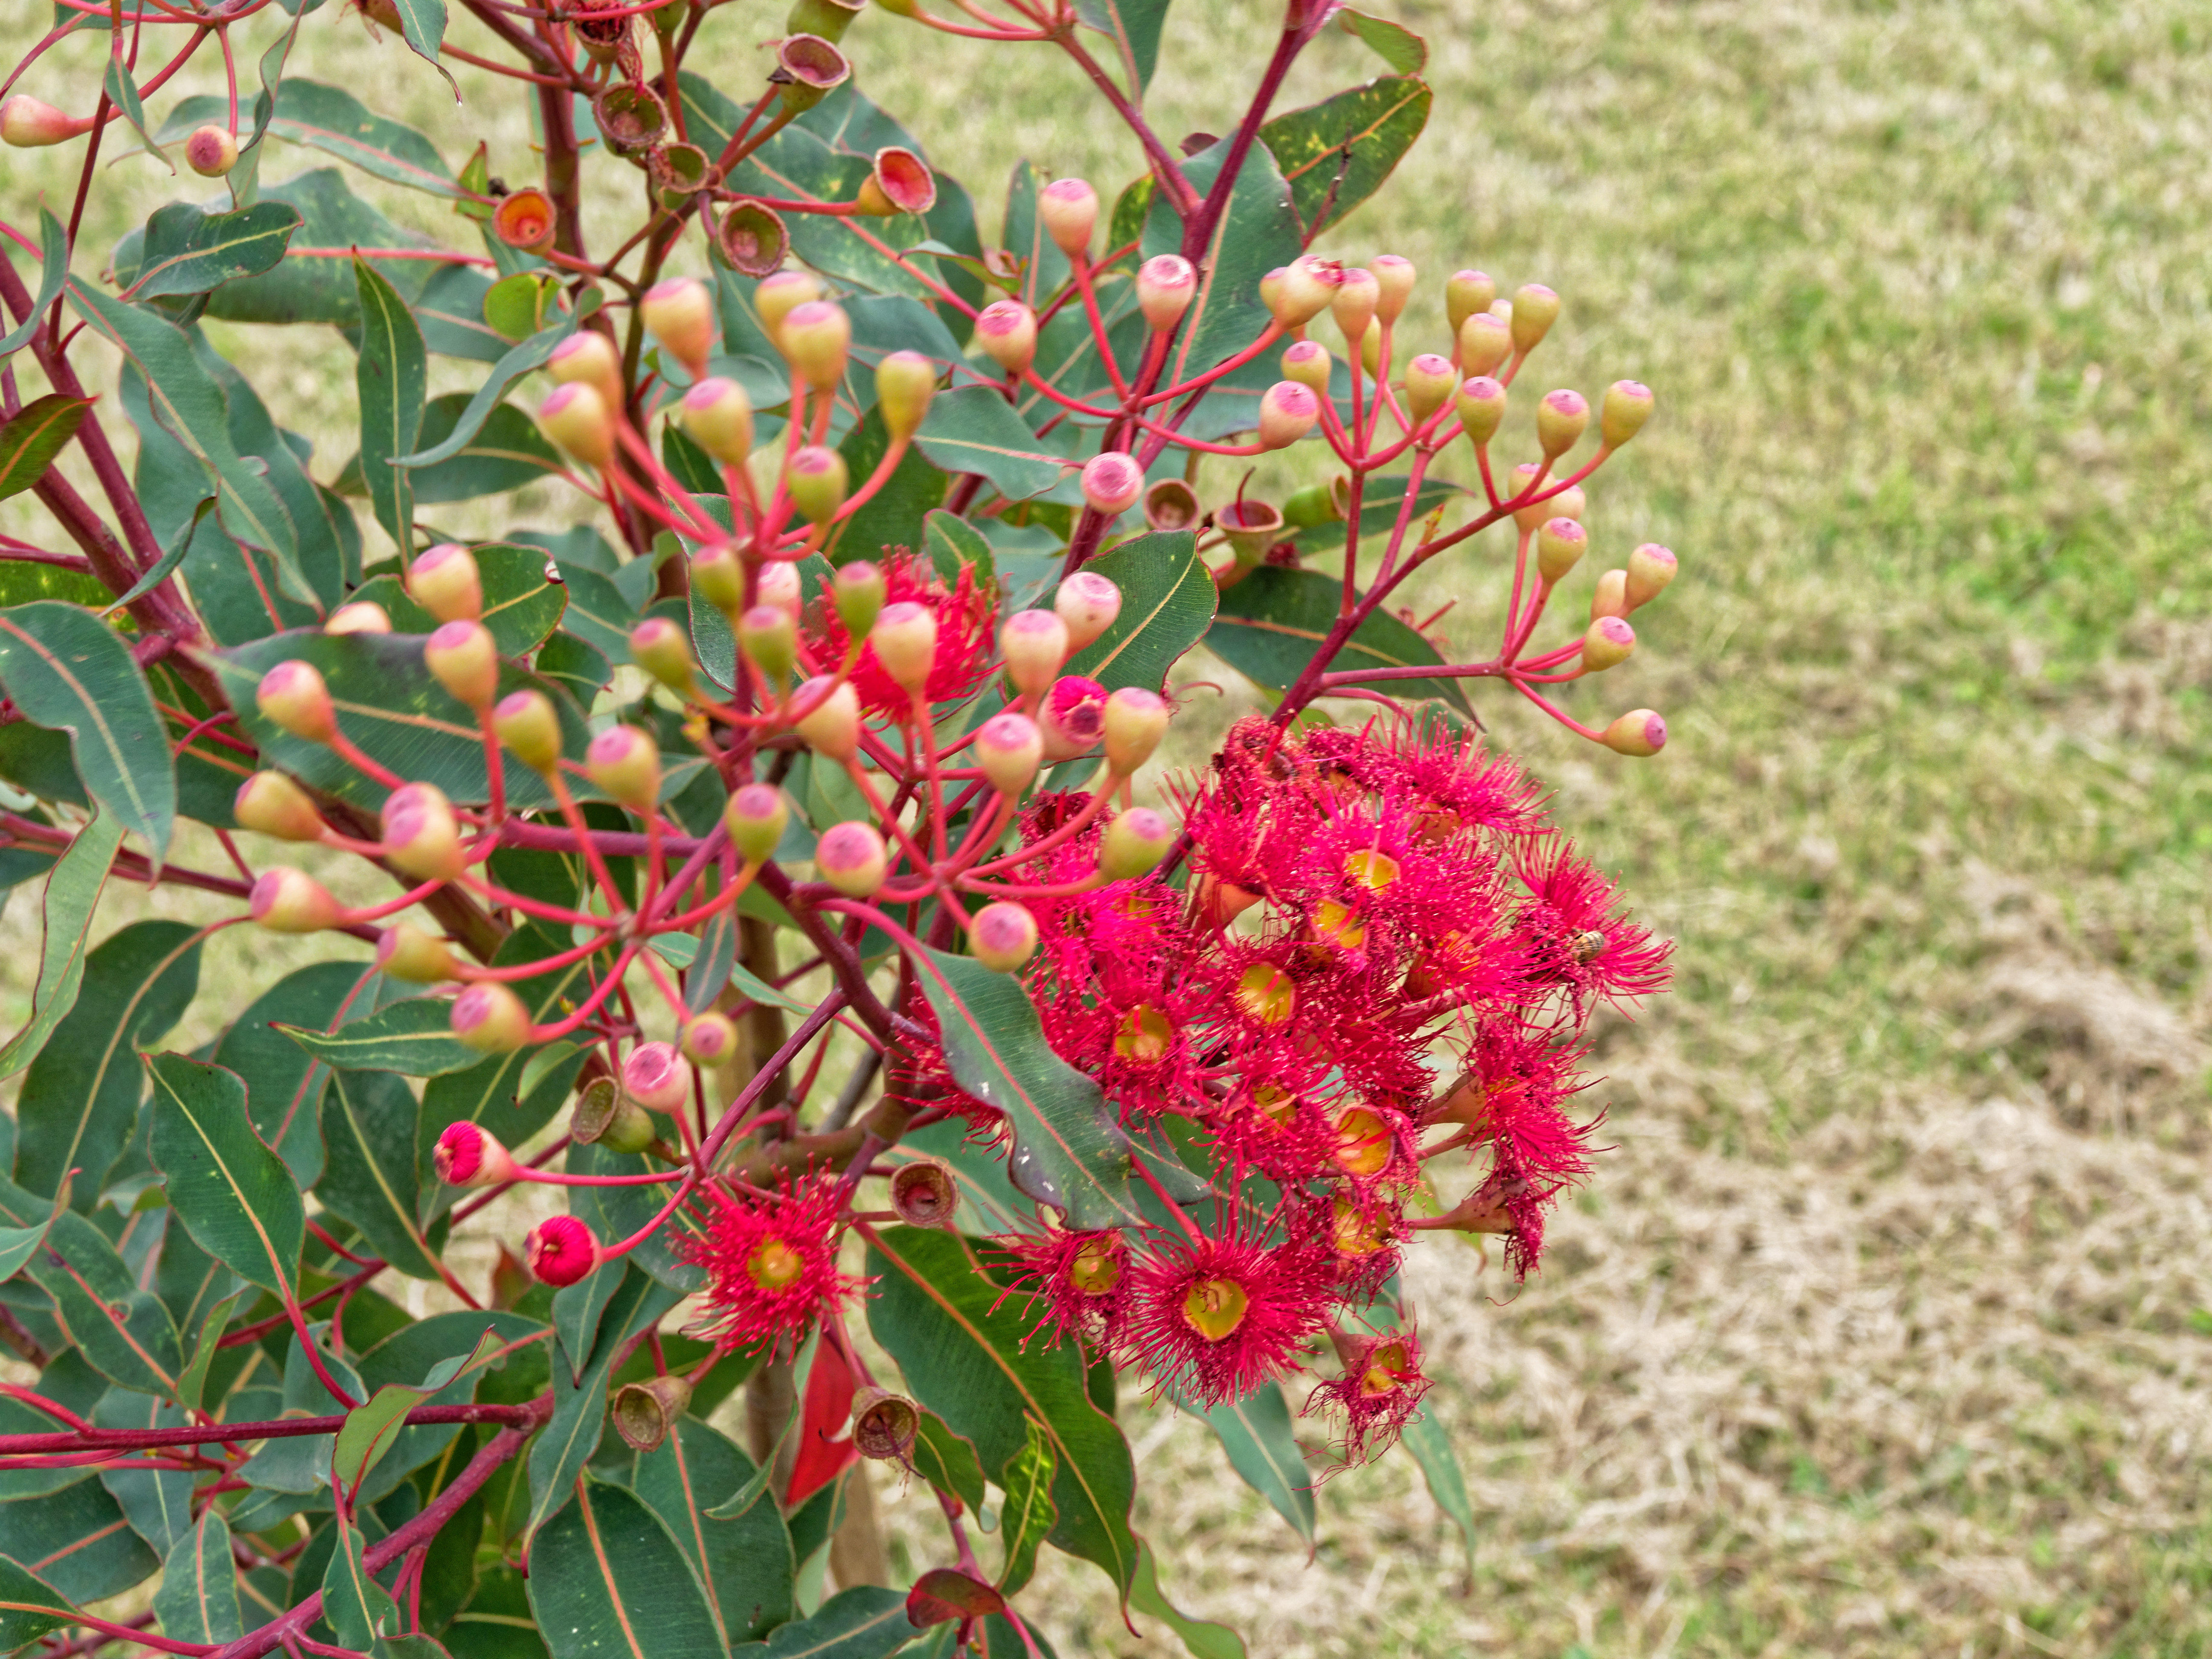 This should be Corymbia-ficifolia-2.jpeg.  Is it missing?